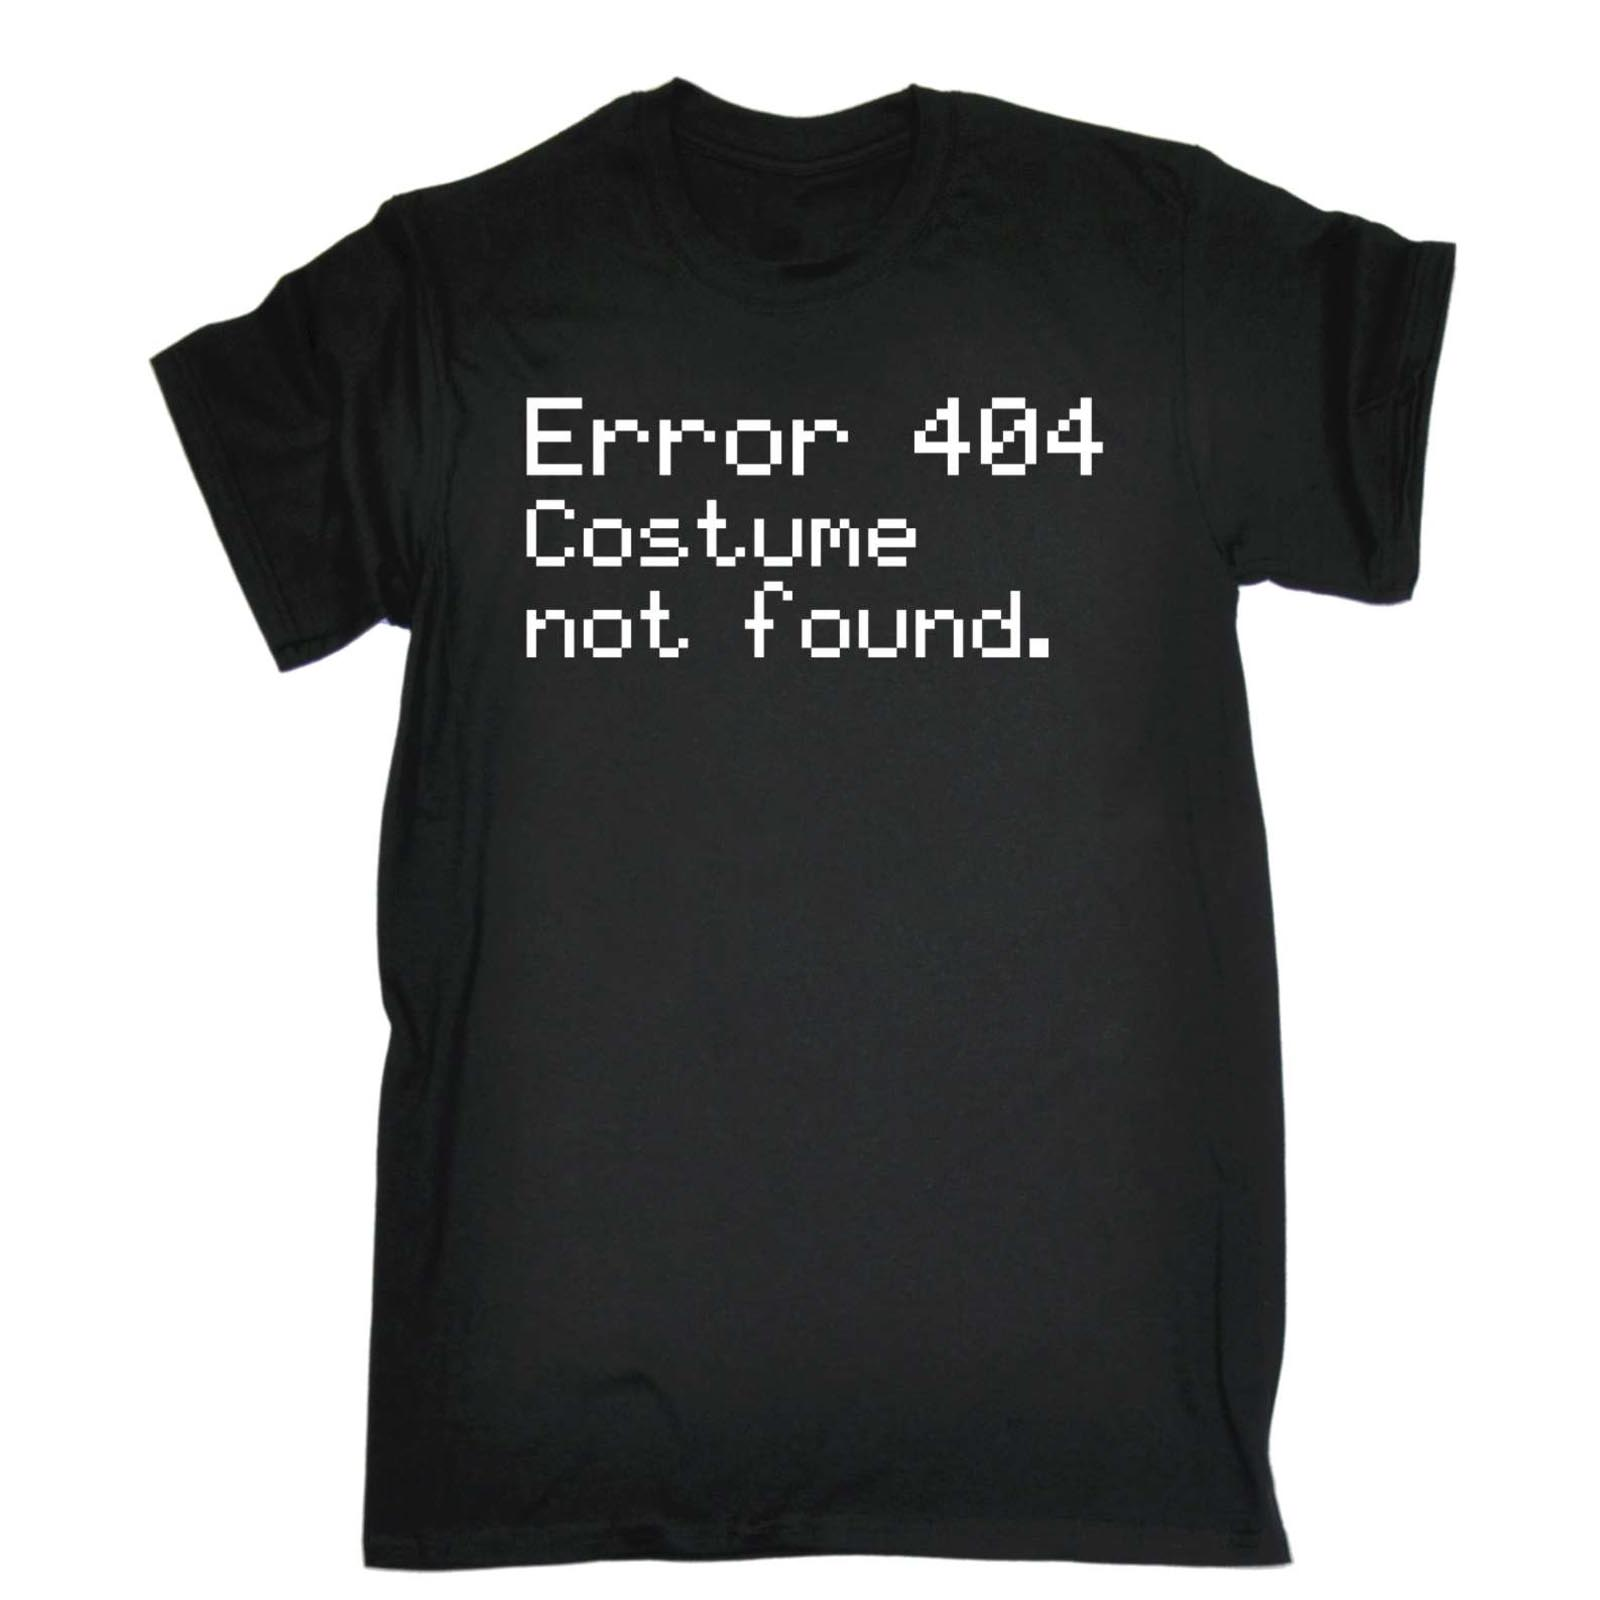 Men's <font><b>Error</b></font> <font><b>404</b></font> Costume Not Found Funny Joke Halloween Geek Nerd IT T-<font><b>Shirt</b></font> Hot Sale Men T <font><b>Shirt</b></font> Fashion Letter Printing image